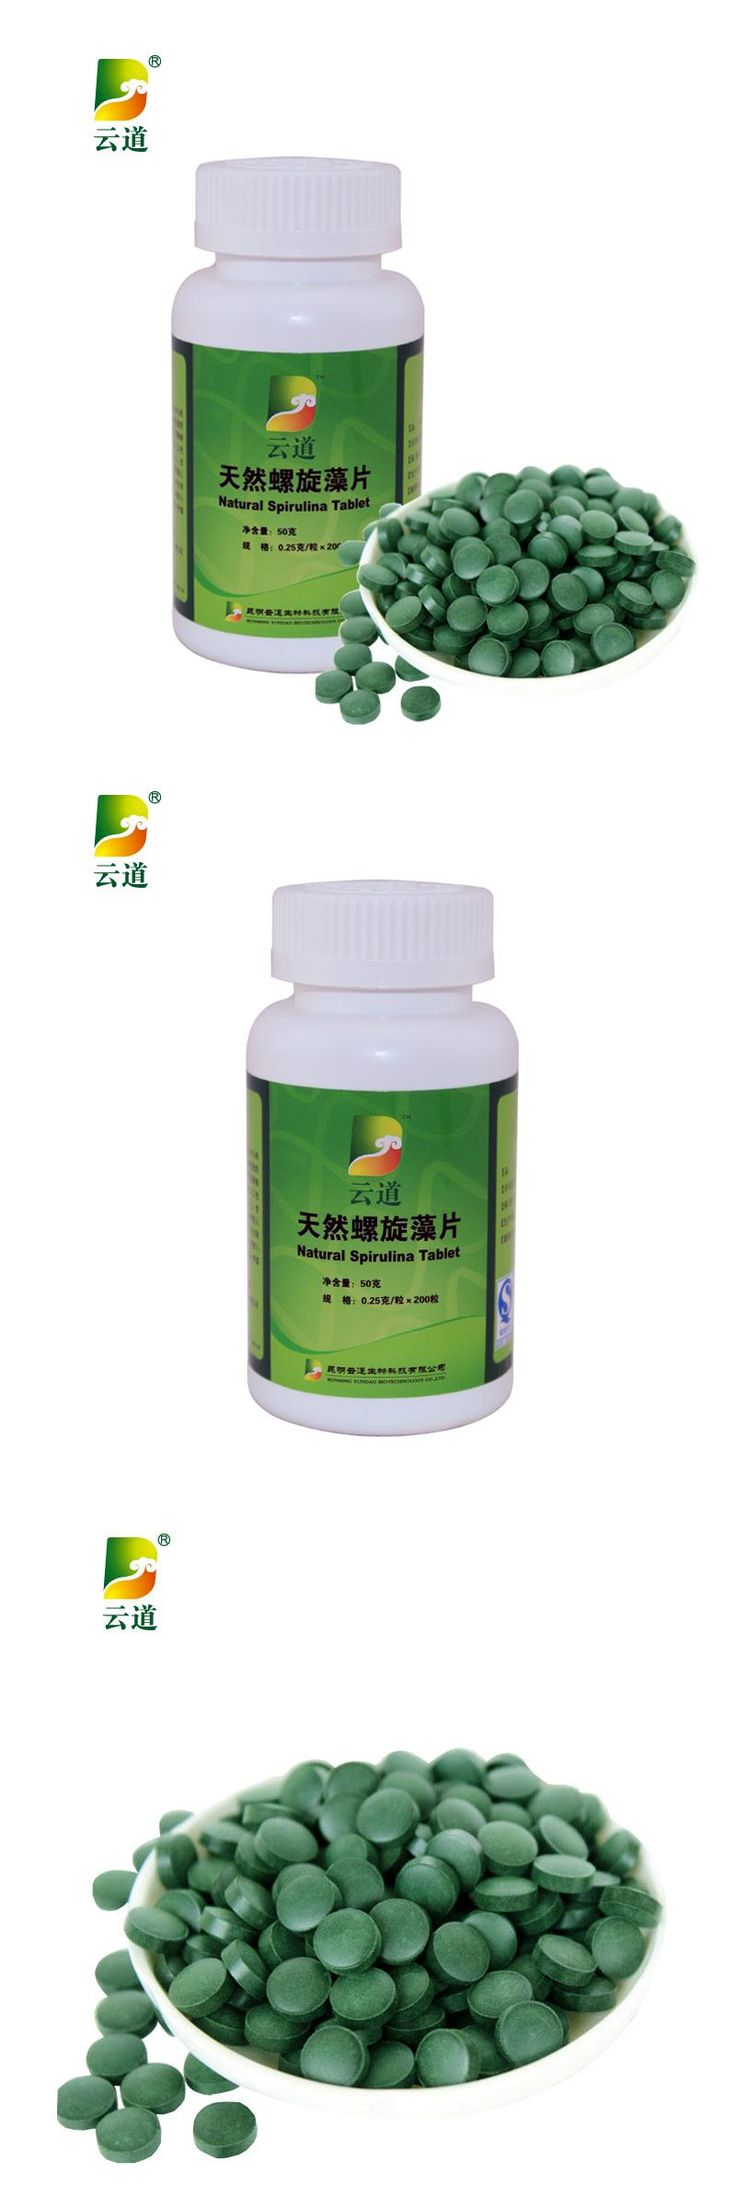 [Visit to Buy] Free shipping  600 Pcs 150g /lot100% Natural Anti-Fatigue Loss Weight Enhance-Immune Organic Spirulina Tablet Health Food #Advertisement